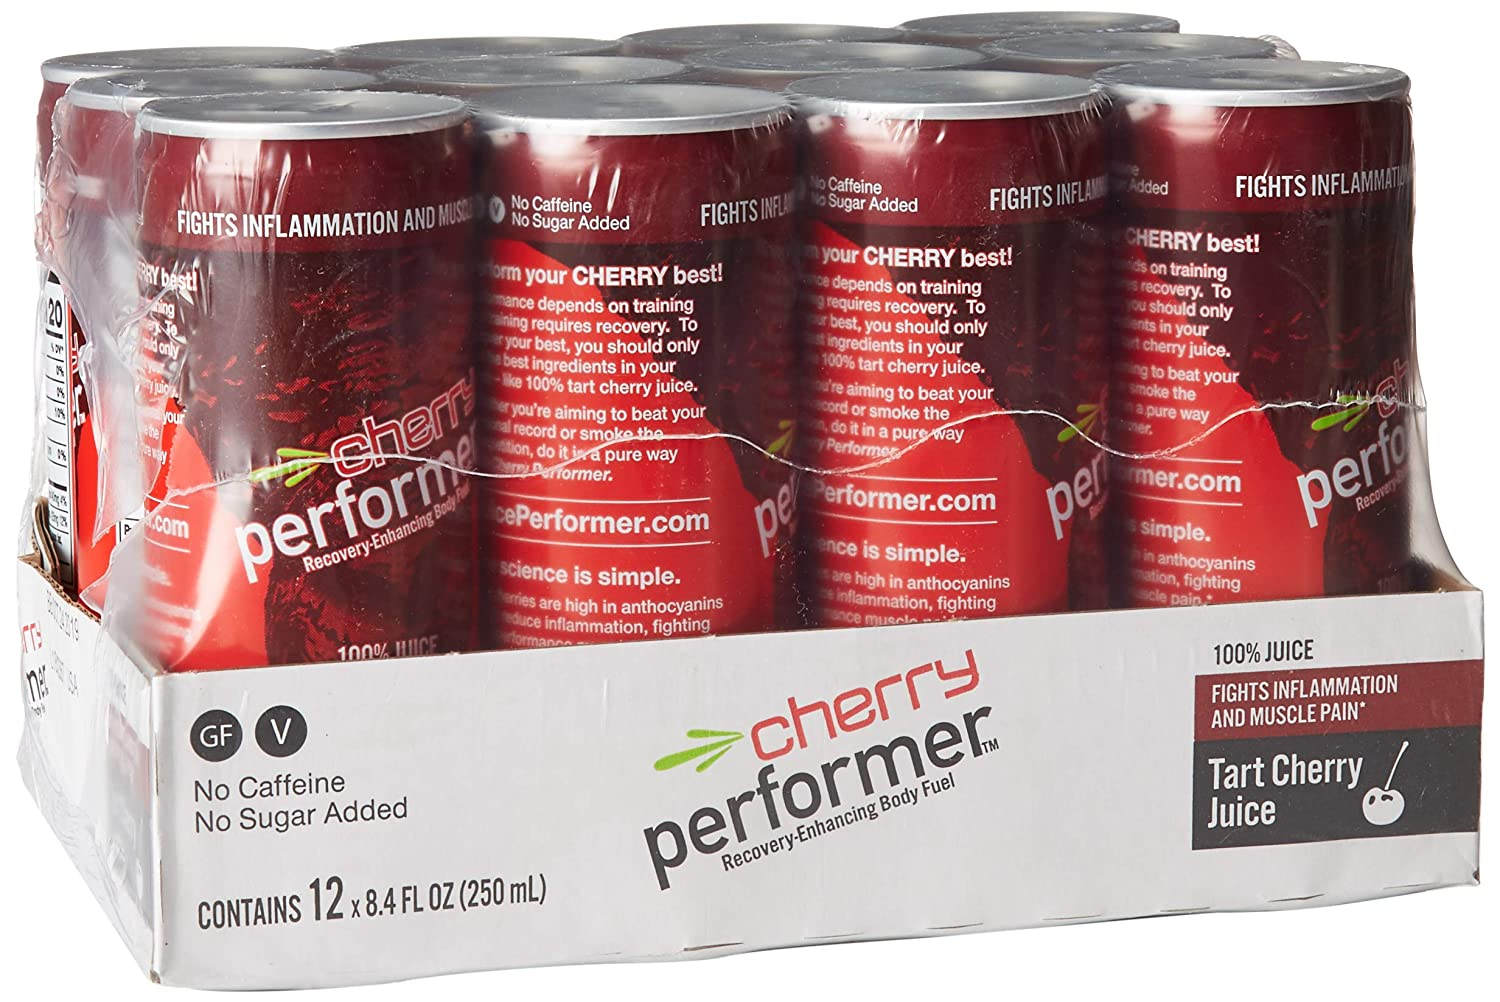 Amazon.com : Cherry Performer Tart Cherry Juice 8.4 Fl. Oz. Can (12 Pack) : Grocery & Gourmet Food